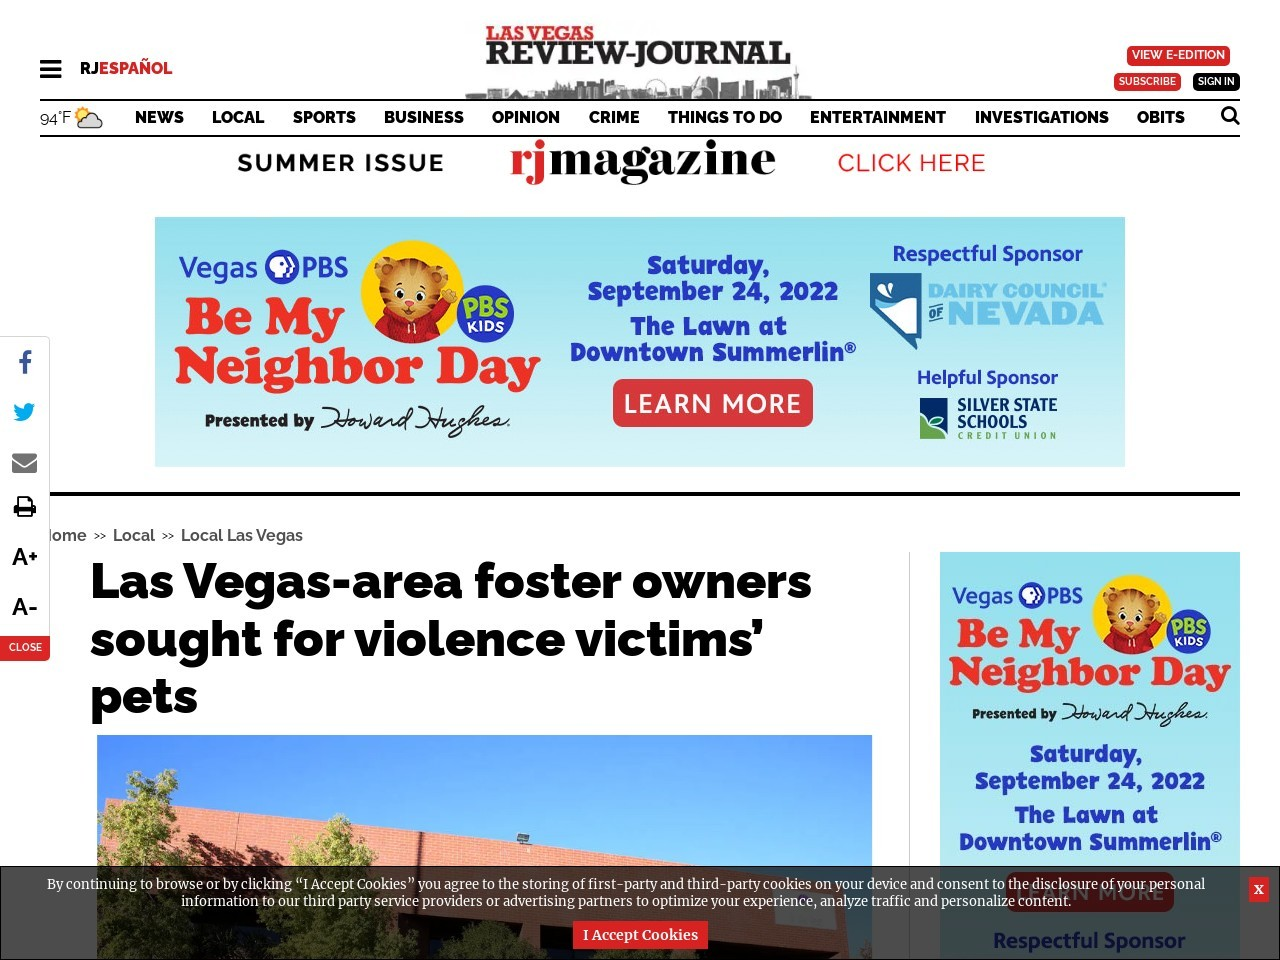 Las Vegas-area foster owners sought for violence victims' pets